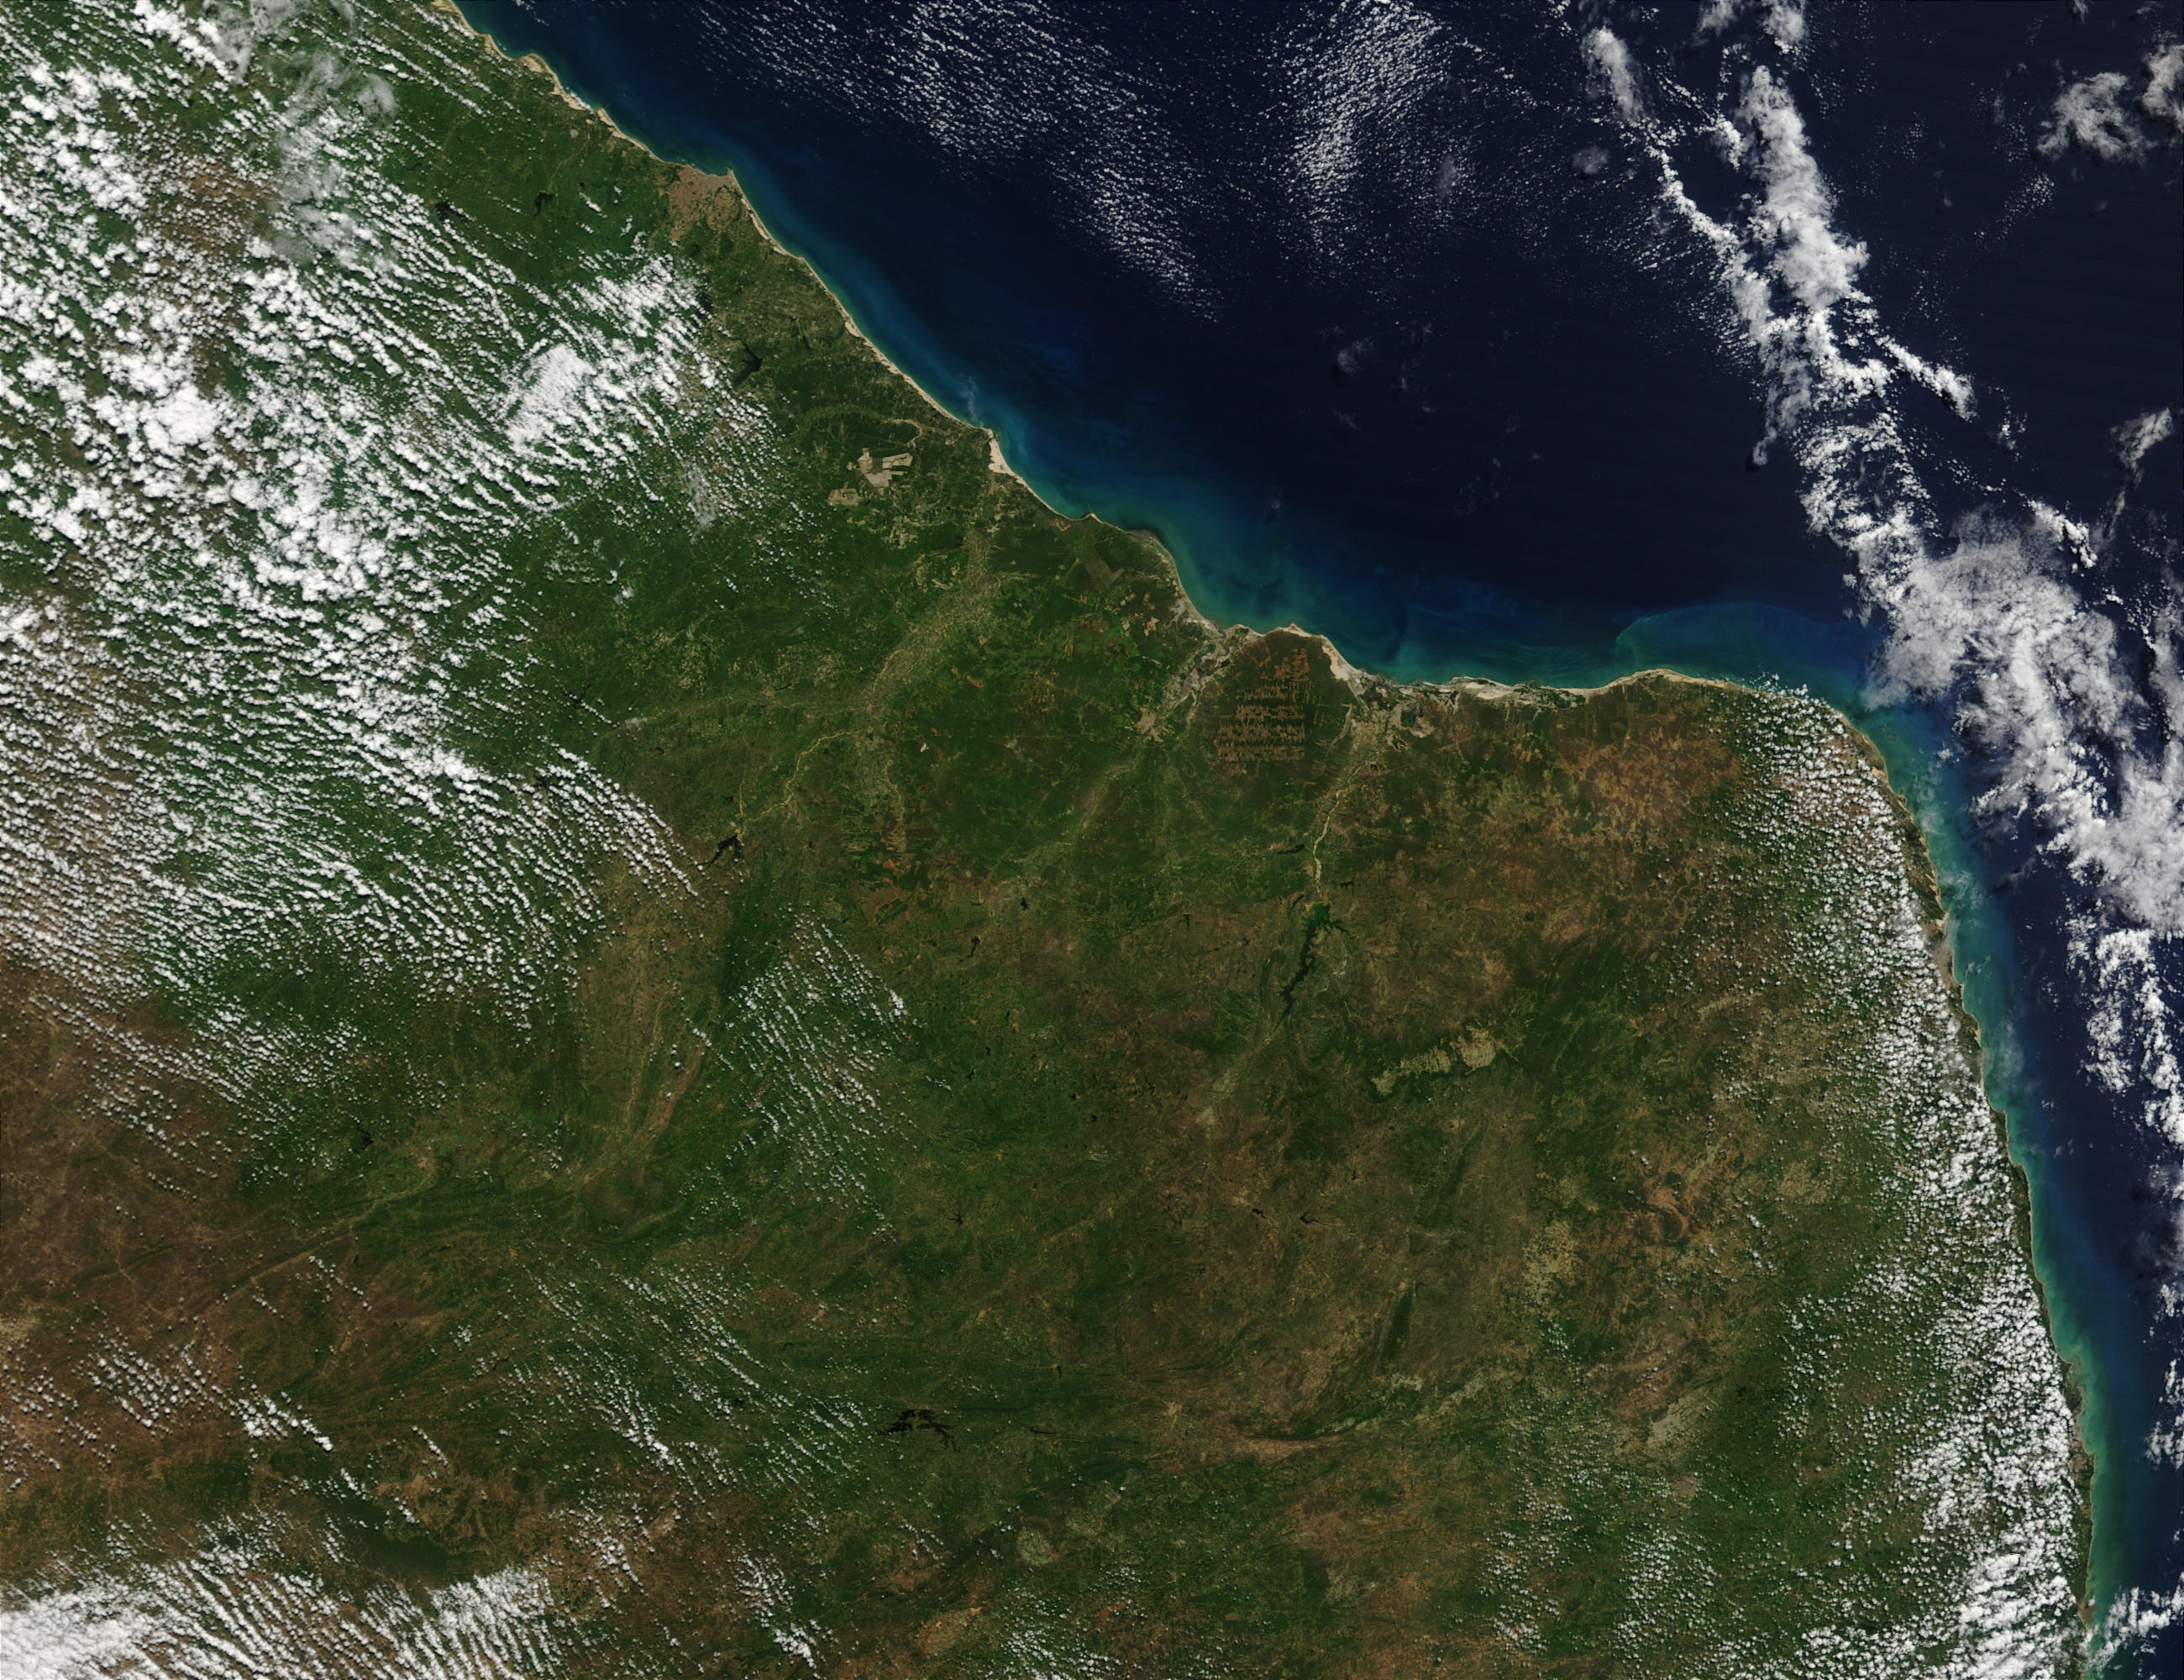 Northeast coast of Brazil